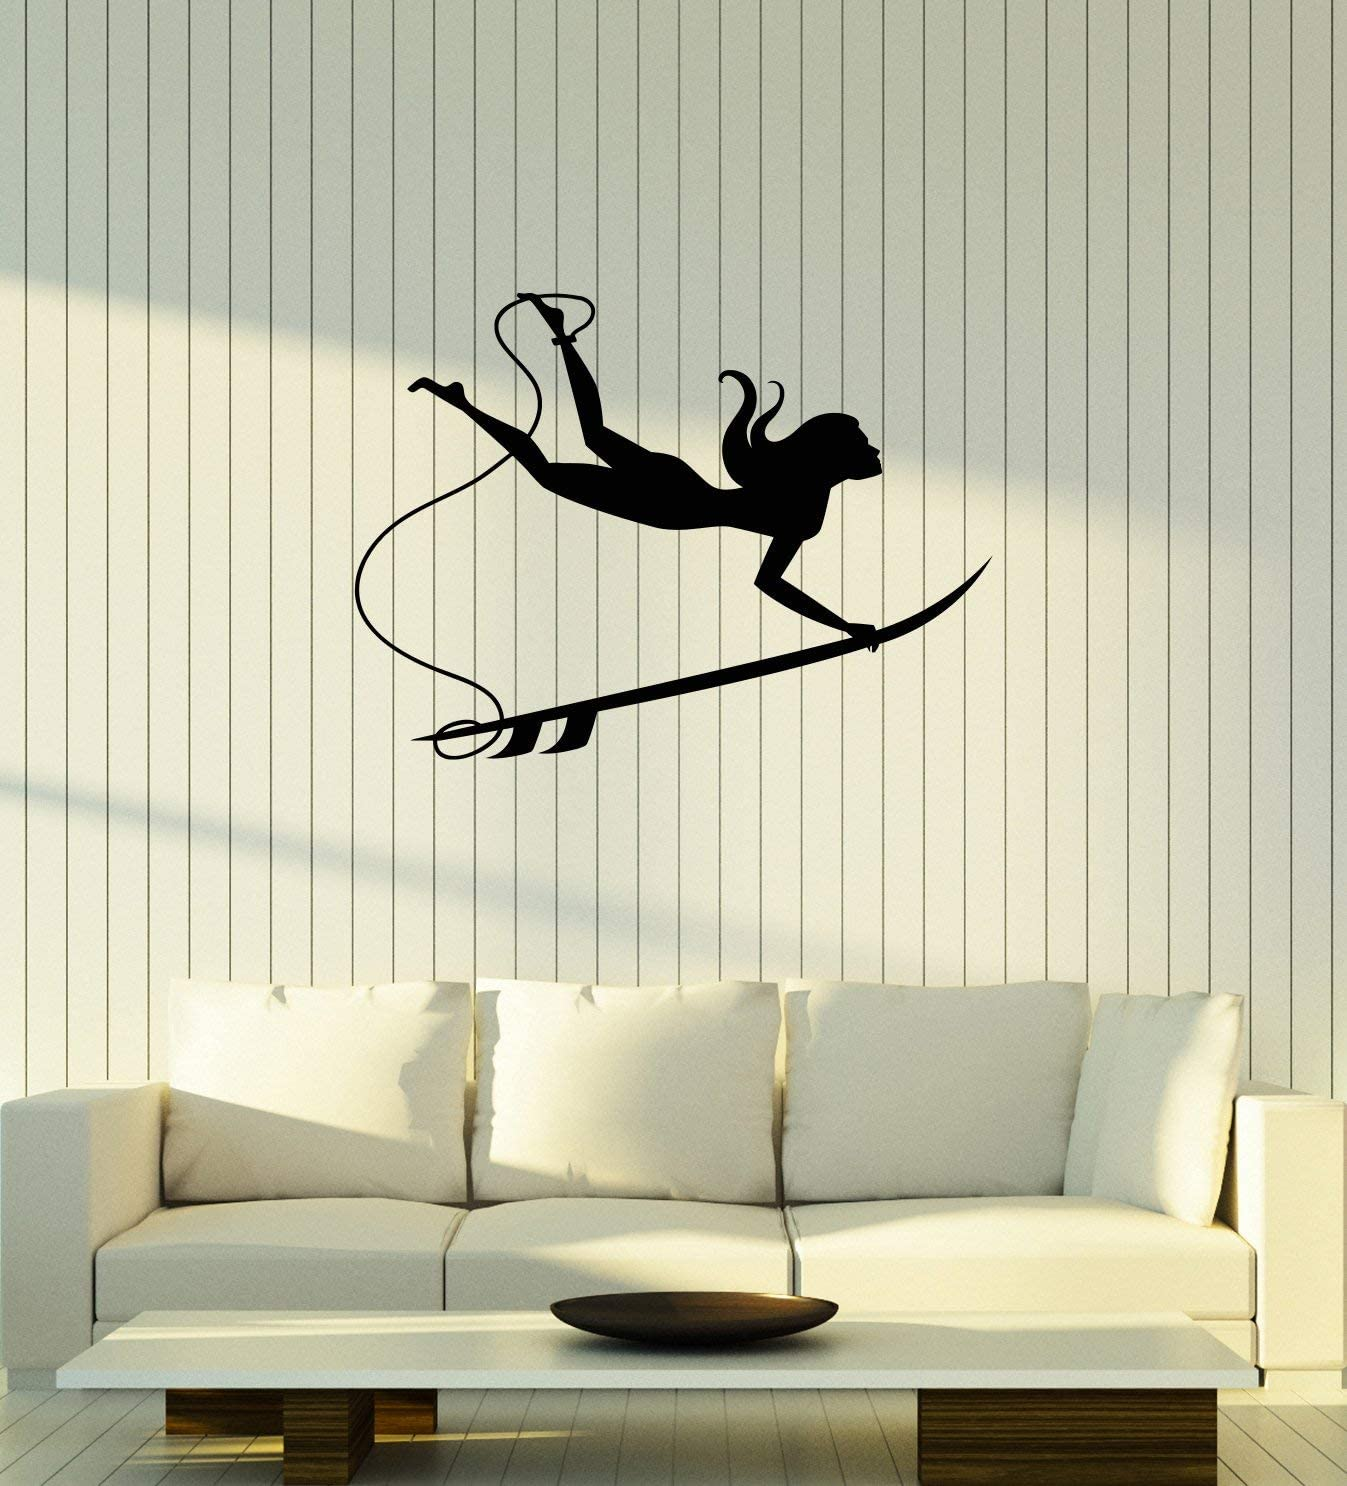 Vinyl Wall Decal Surfer Girl Surfboard Beach Style Surfing Interior Room Stickers Mural Large Decor (ig5826) Black